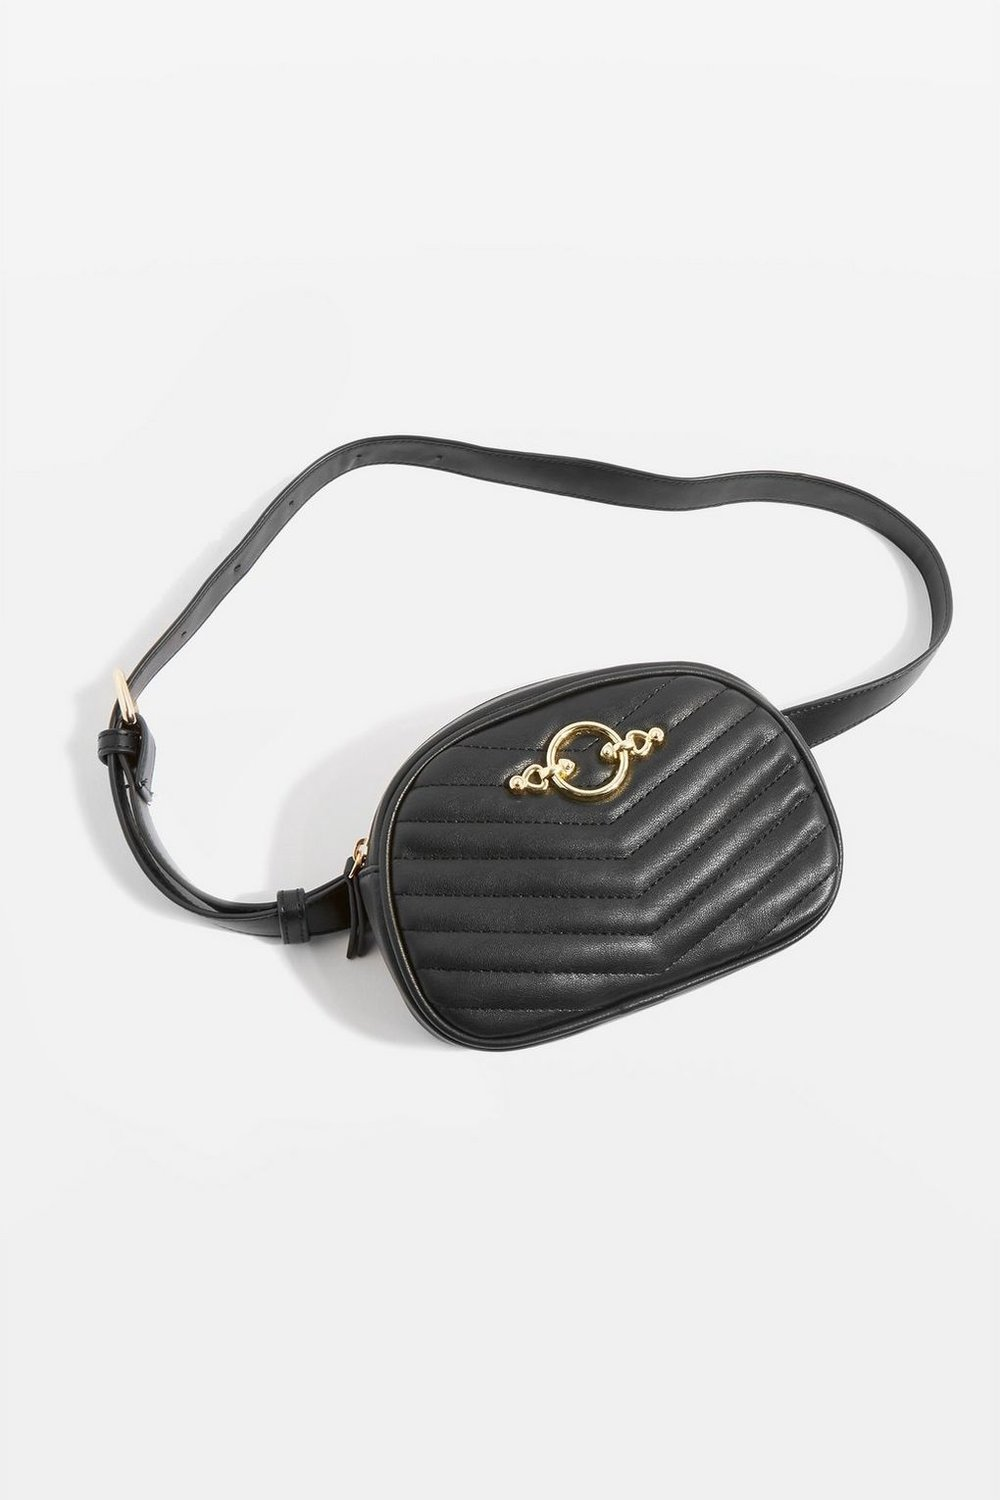 Queenie Quilted Bumbag - £22 at Topshop